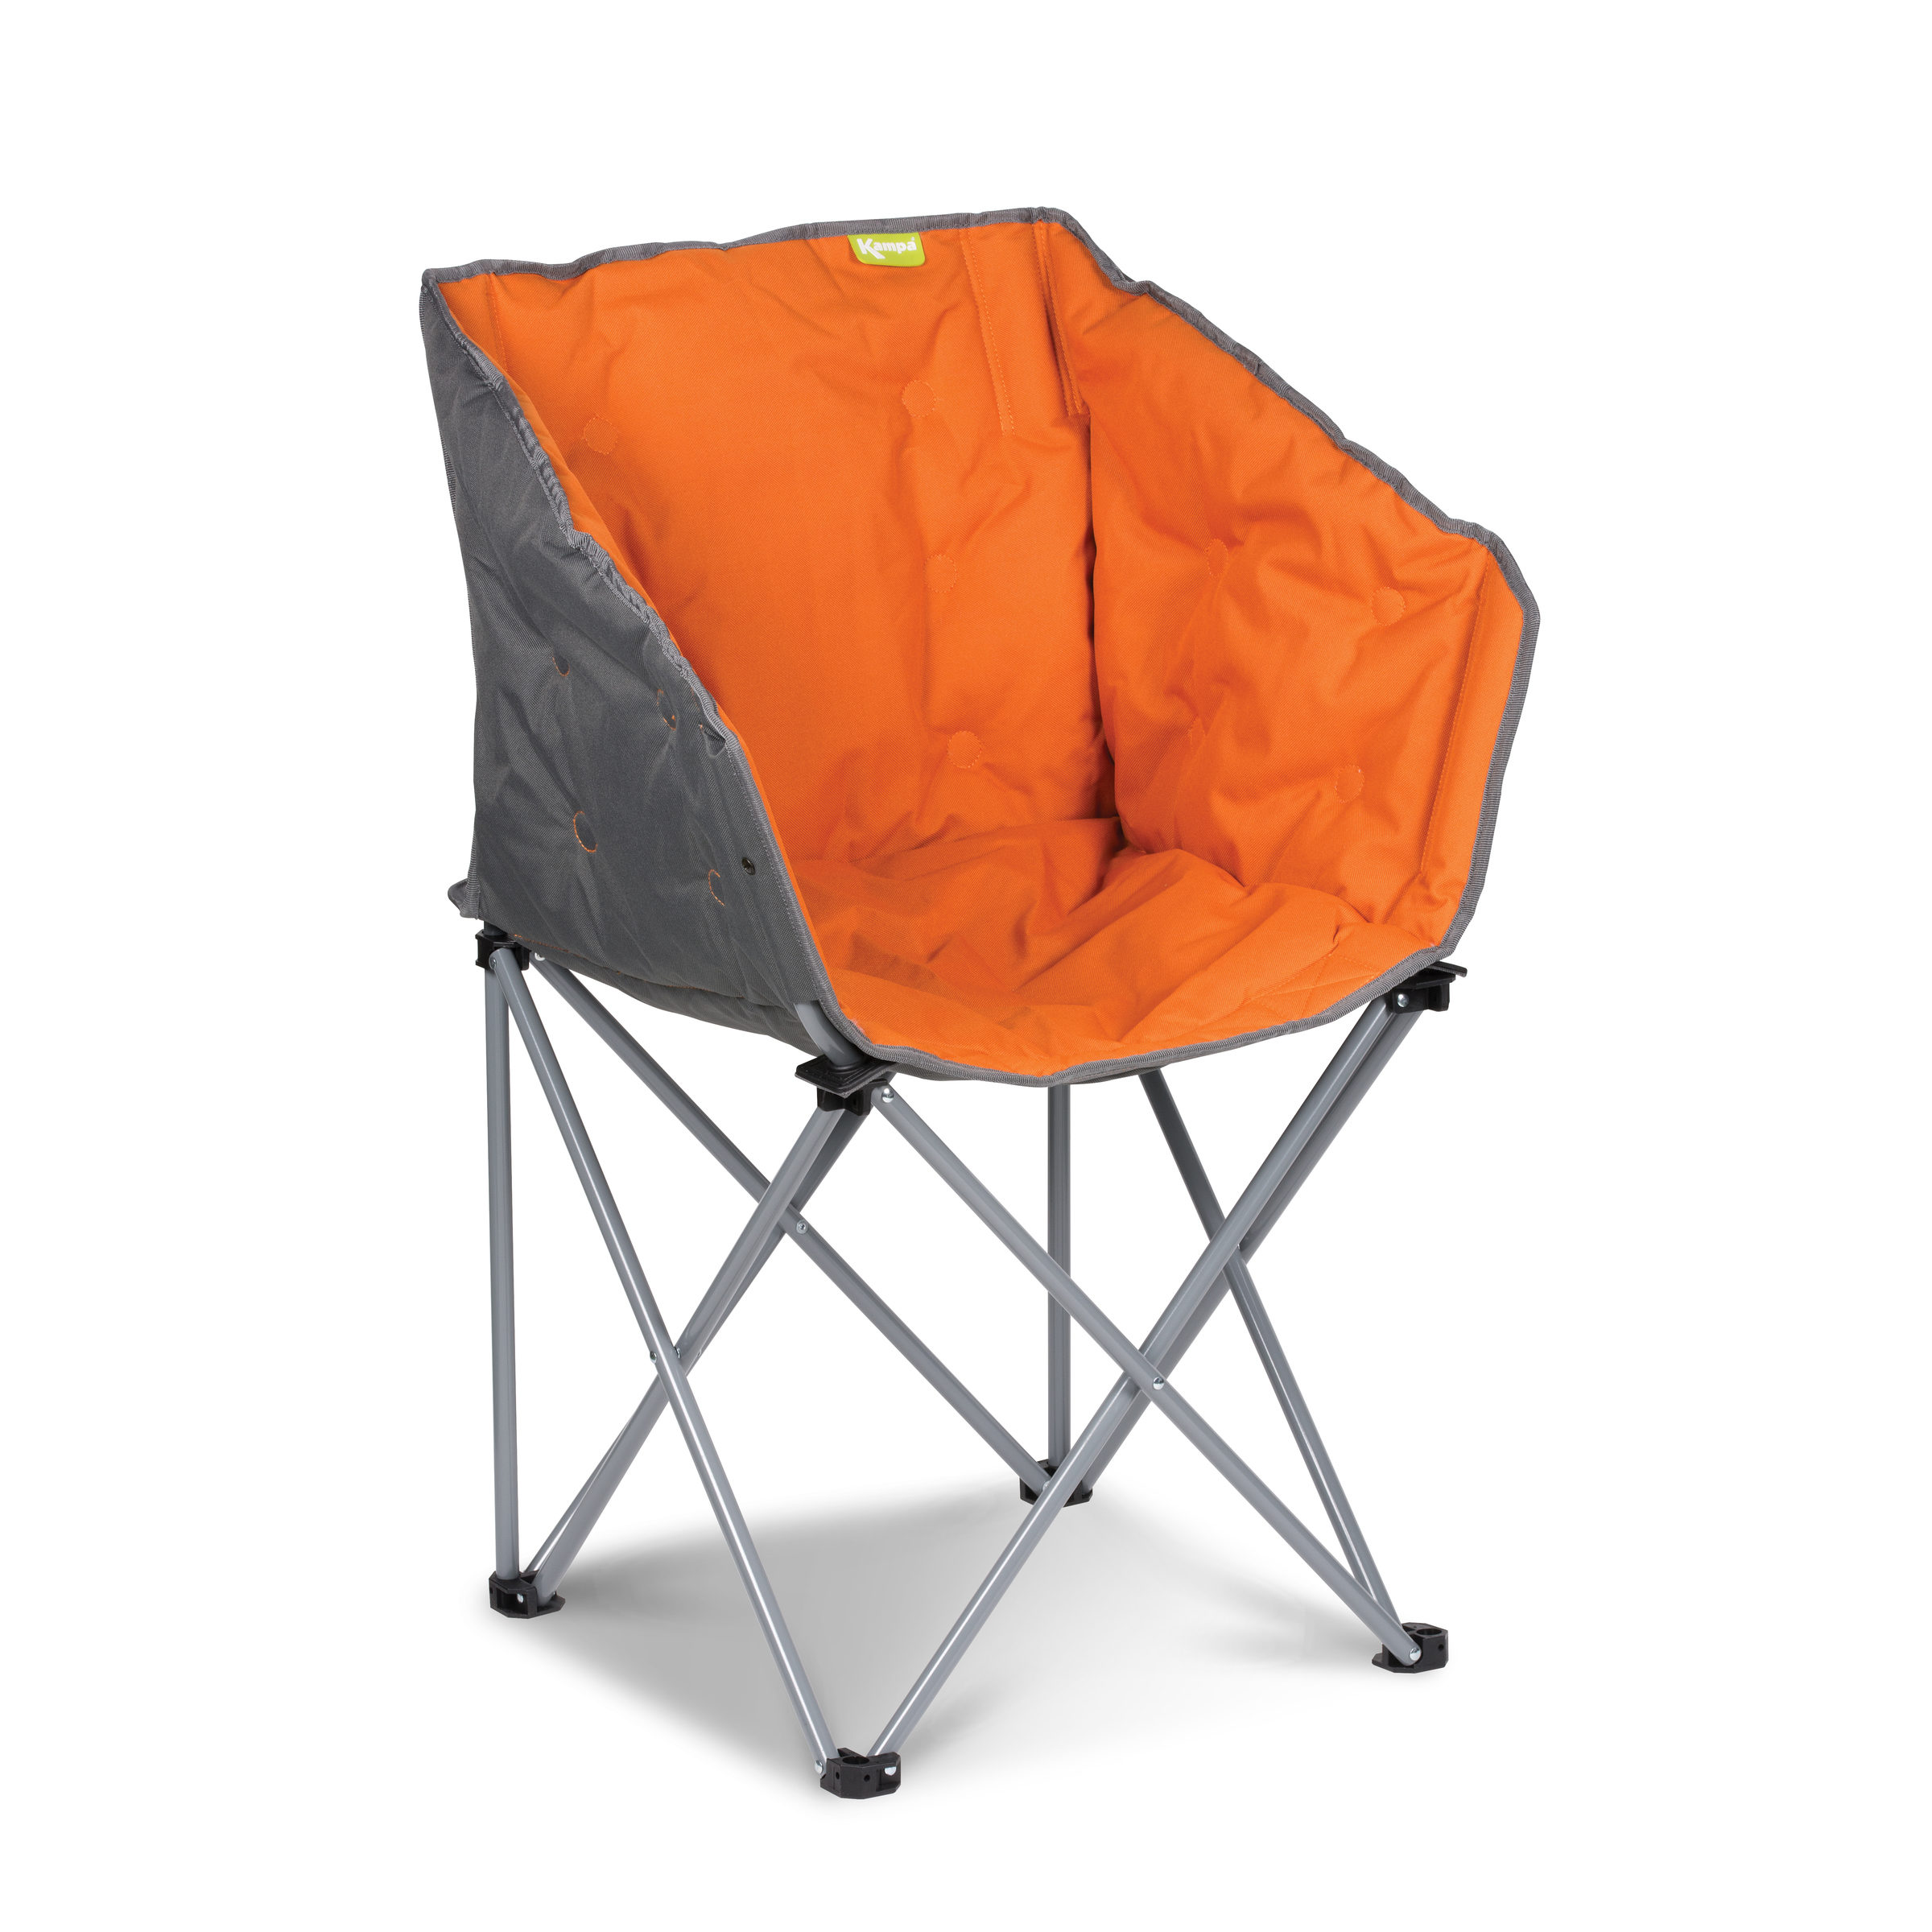 burnt orange chair uk gym vs nano camp chairs camping furniture norwich